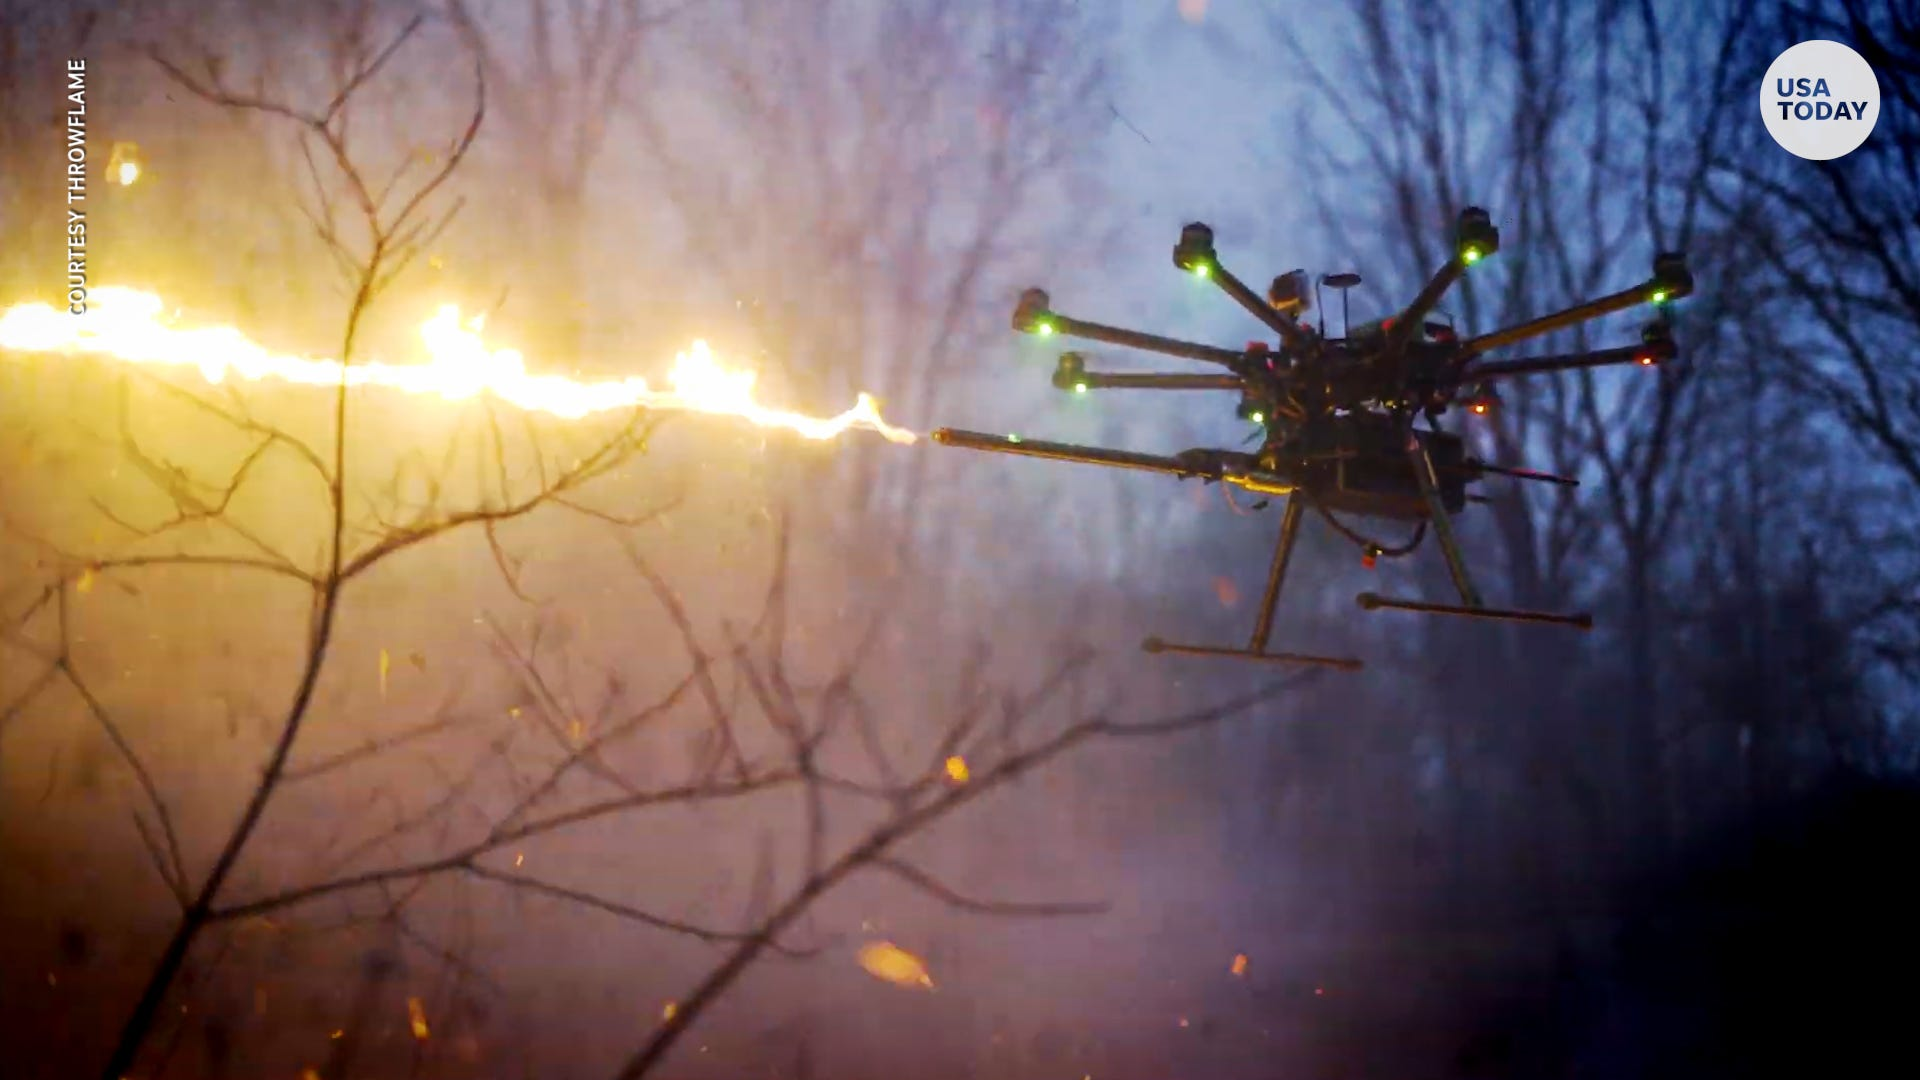 Flamethrower takes flight with drone attachment